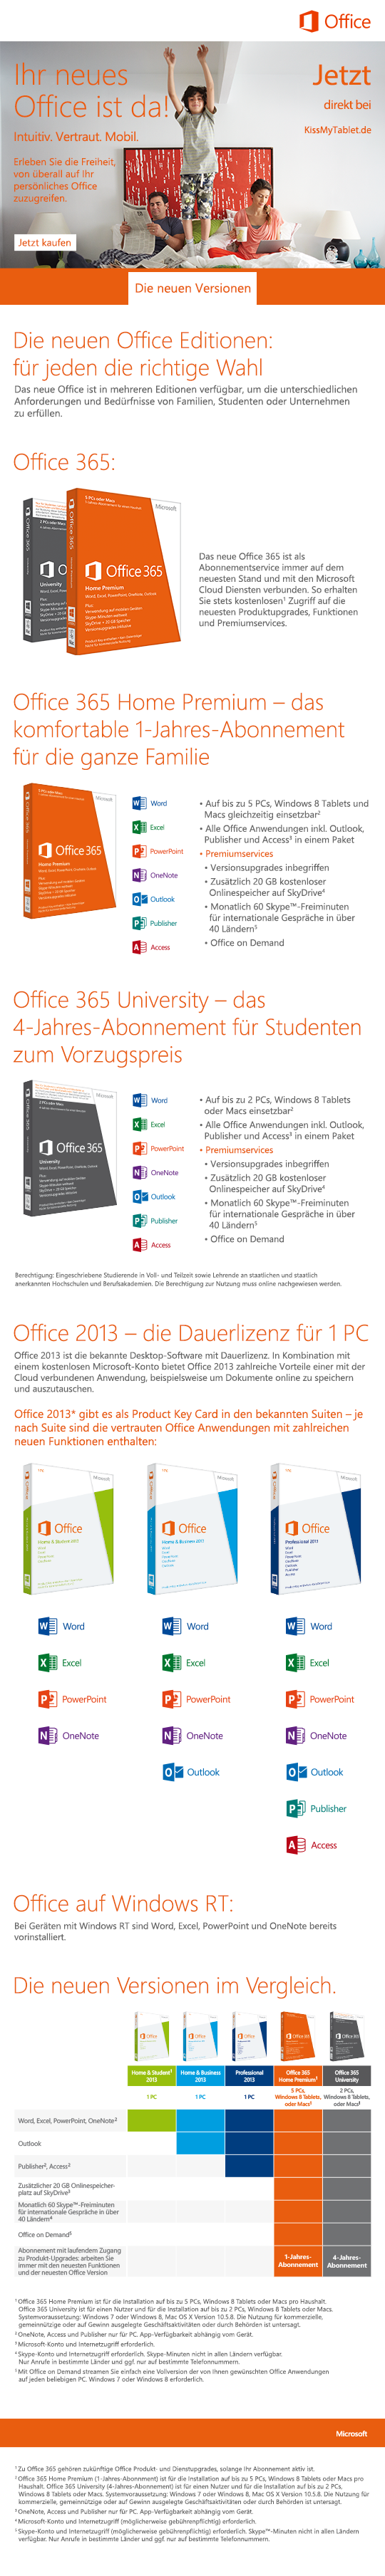 Office2013_LandingPage_Versionen_Final